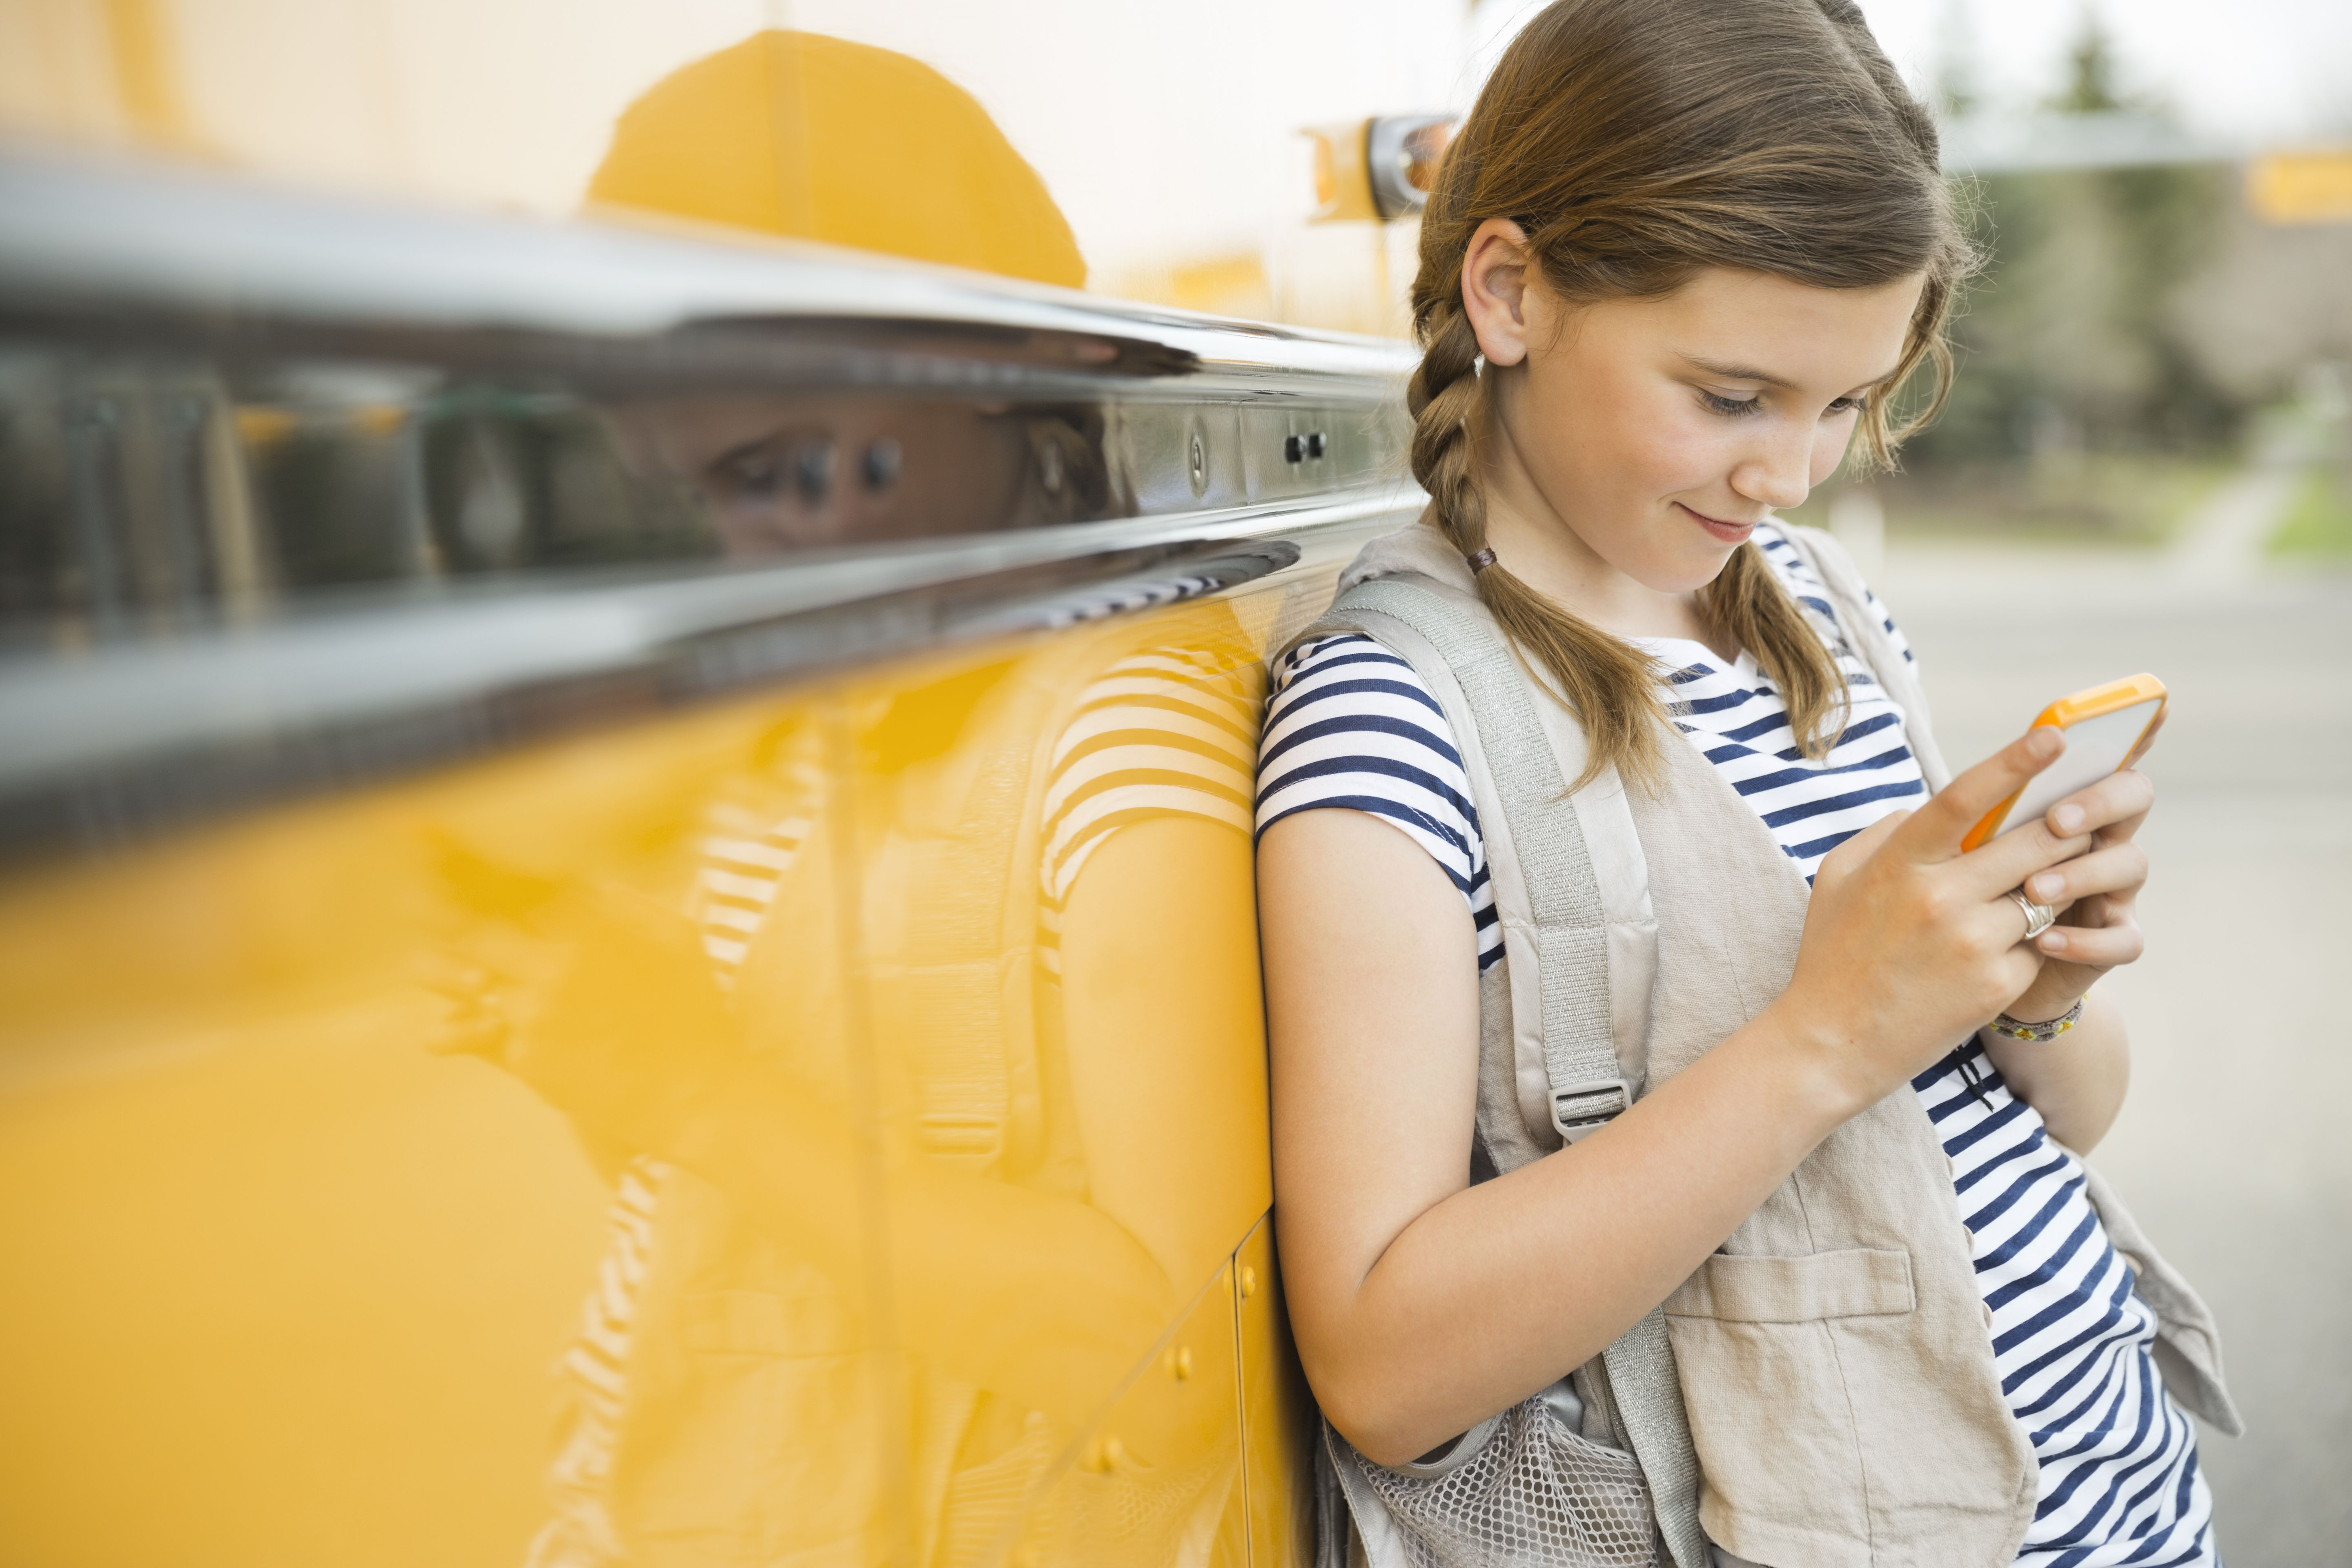 Girl leaning against school bus looking at cell phone